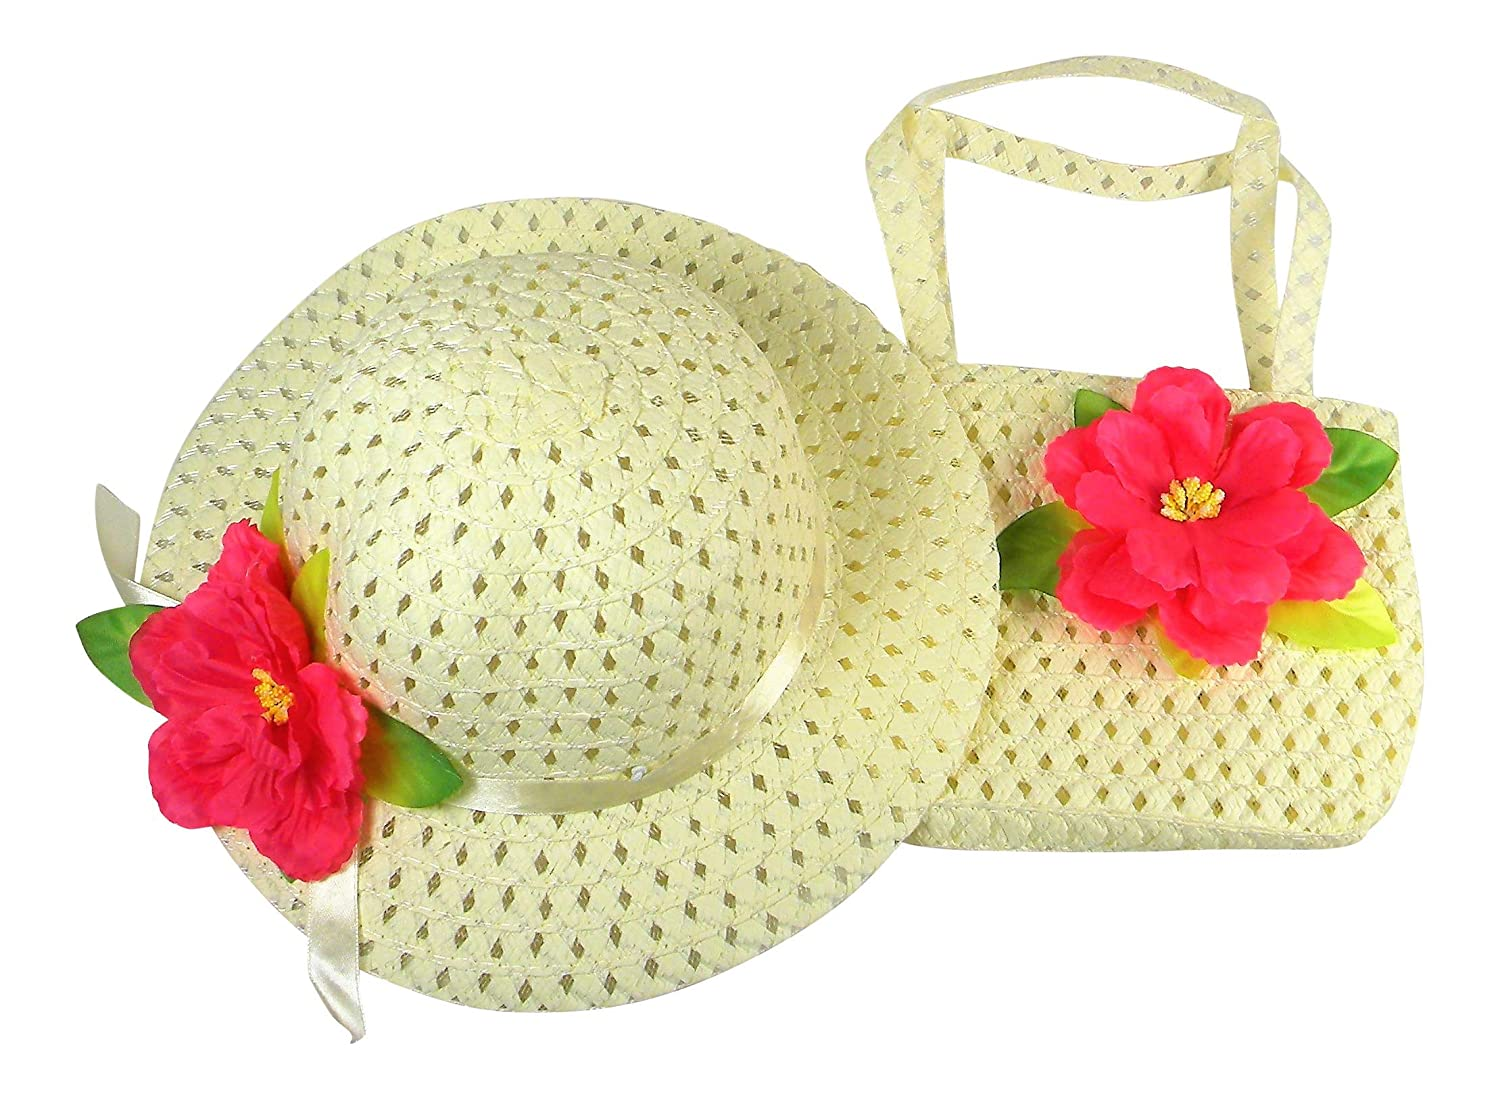 and White Gloves Purse Butterfly Twinkles Girls Tea Party Dress Up Play Set with Sun Hat by